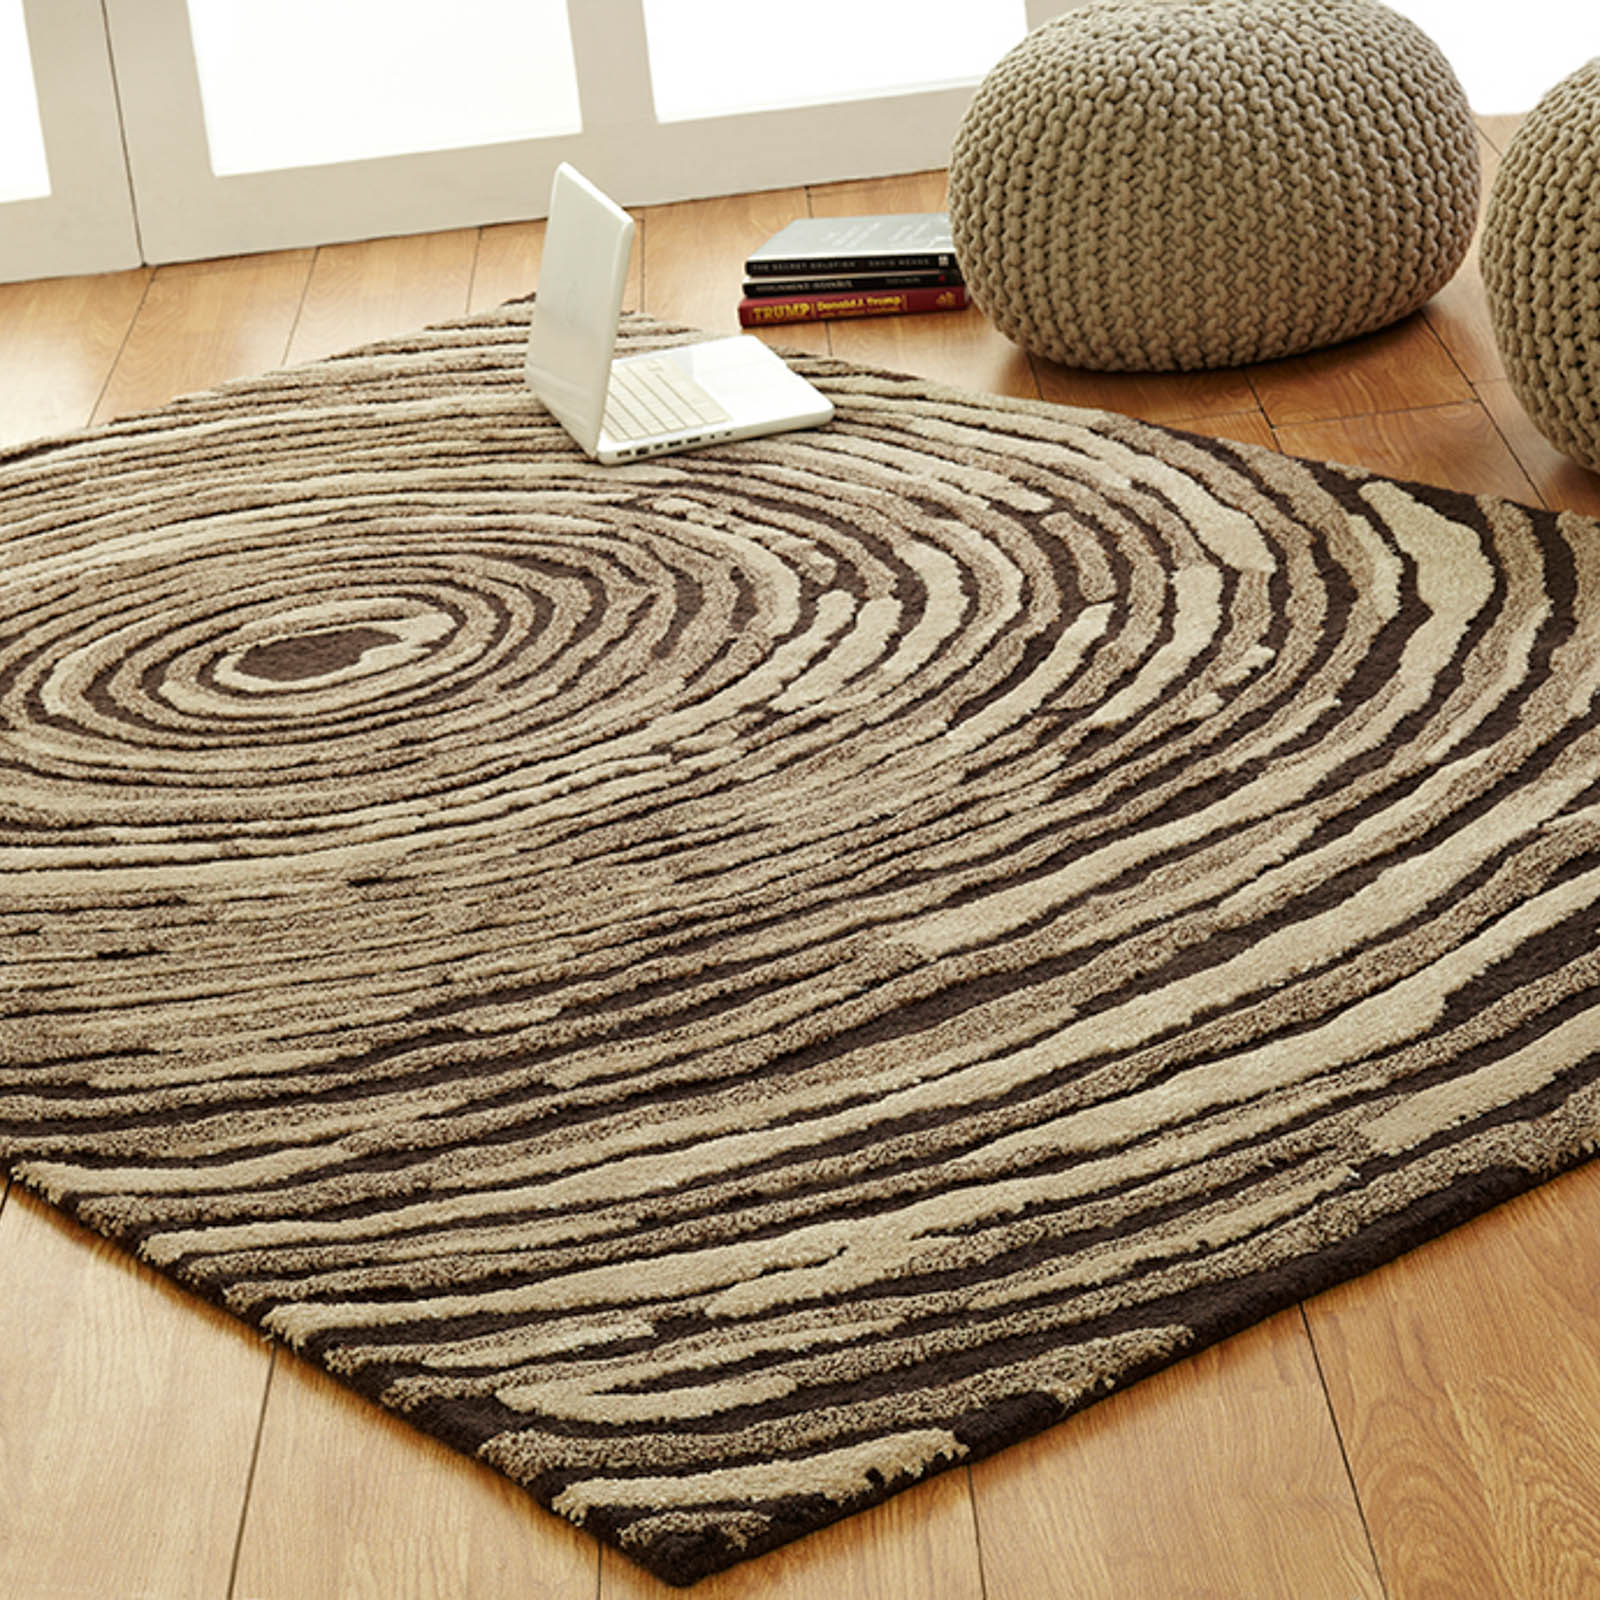 Unique Cyclone rugs in Brown Beige